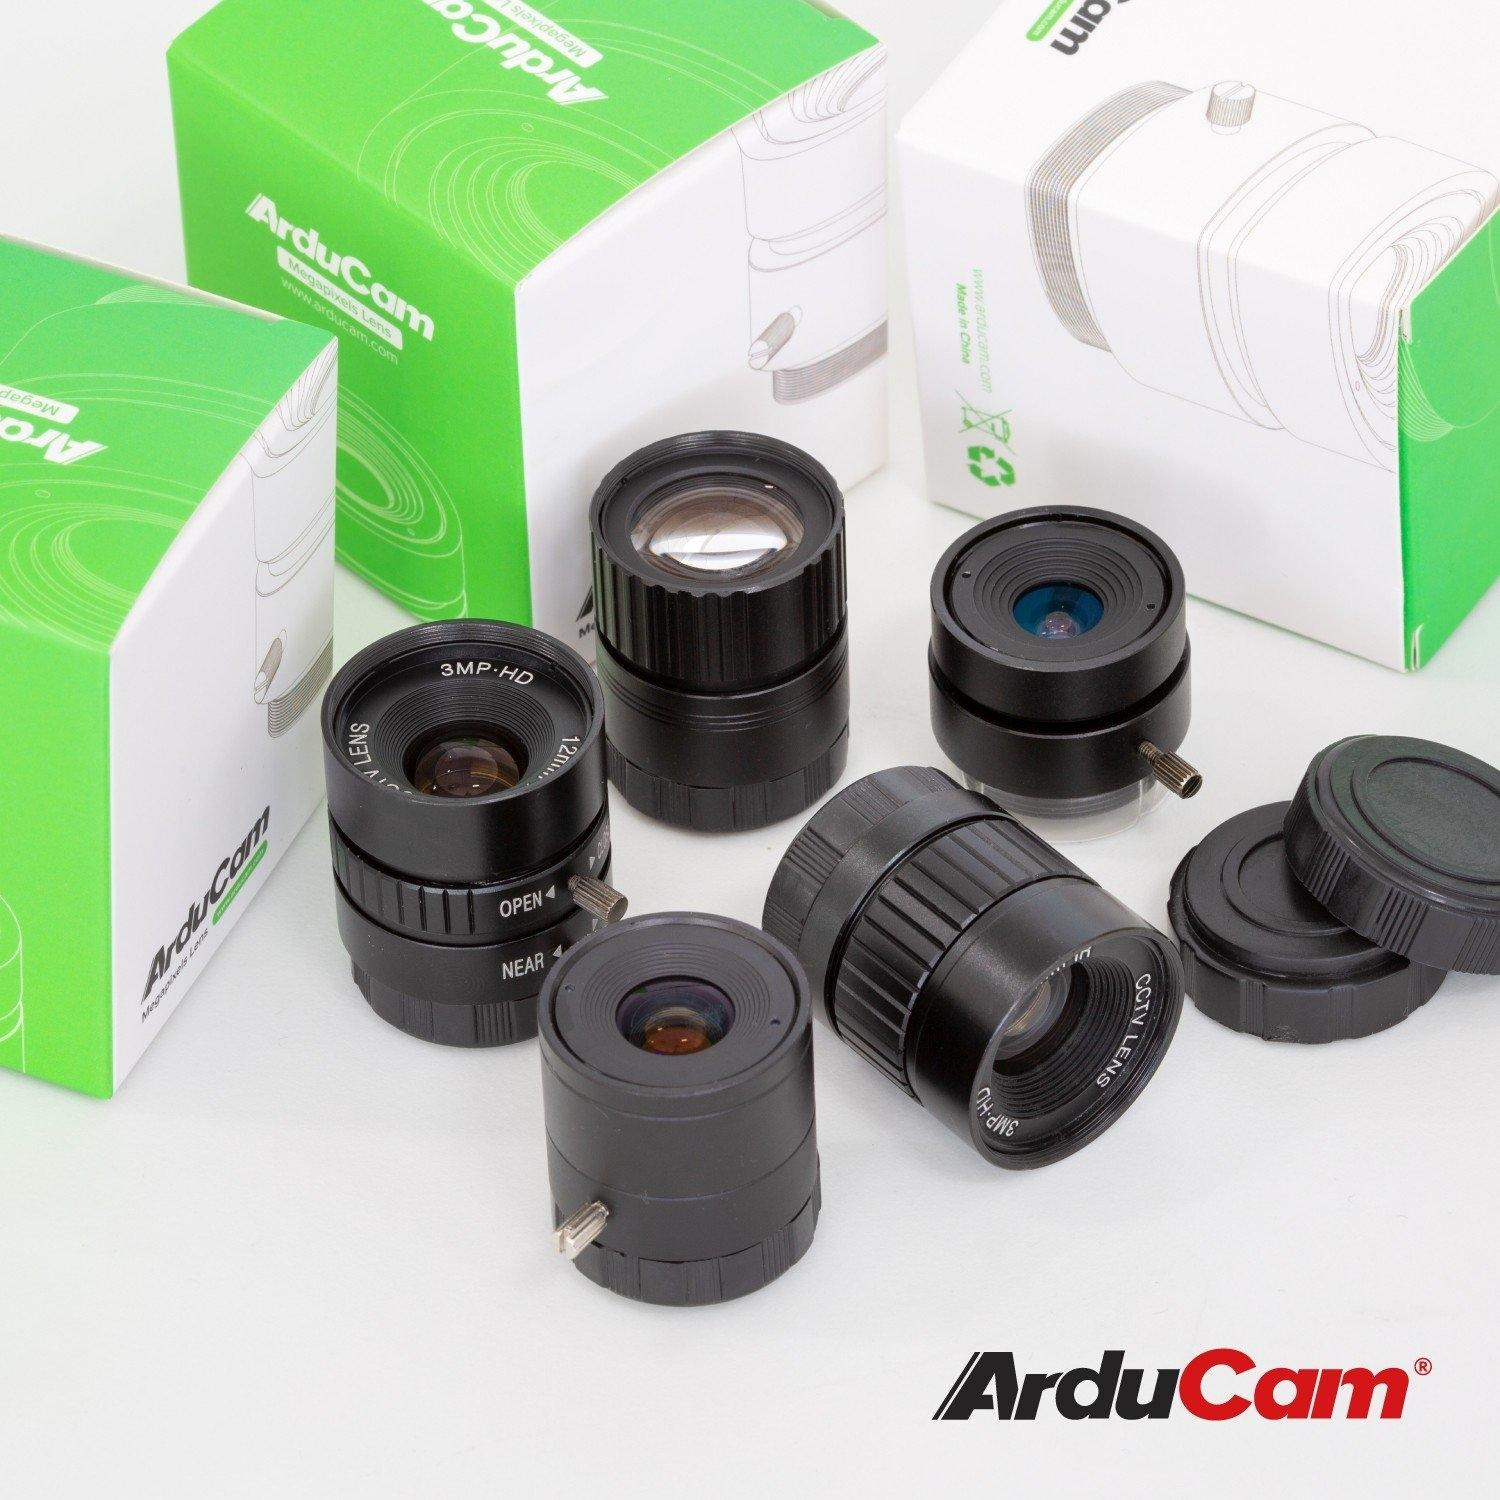 [Raspberry Pi HQ] Arducam CS-Mount Lens Kit for Raspberry Pi HQ Camera (Type 1/2.3)